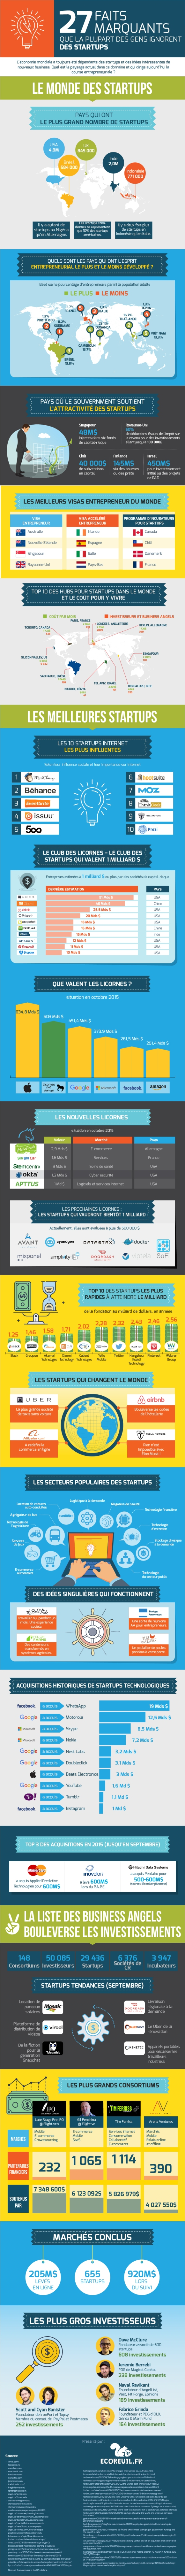 infographie start up